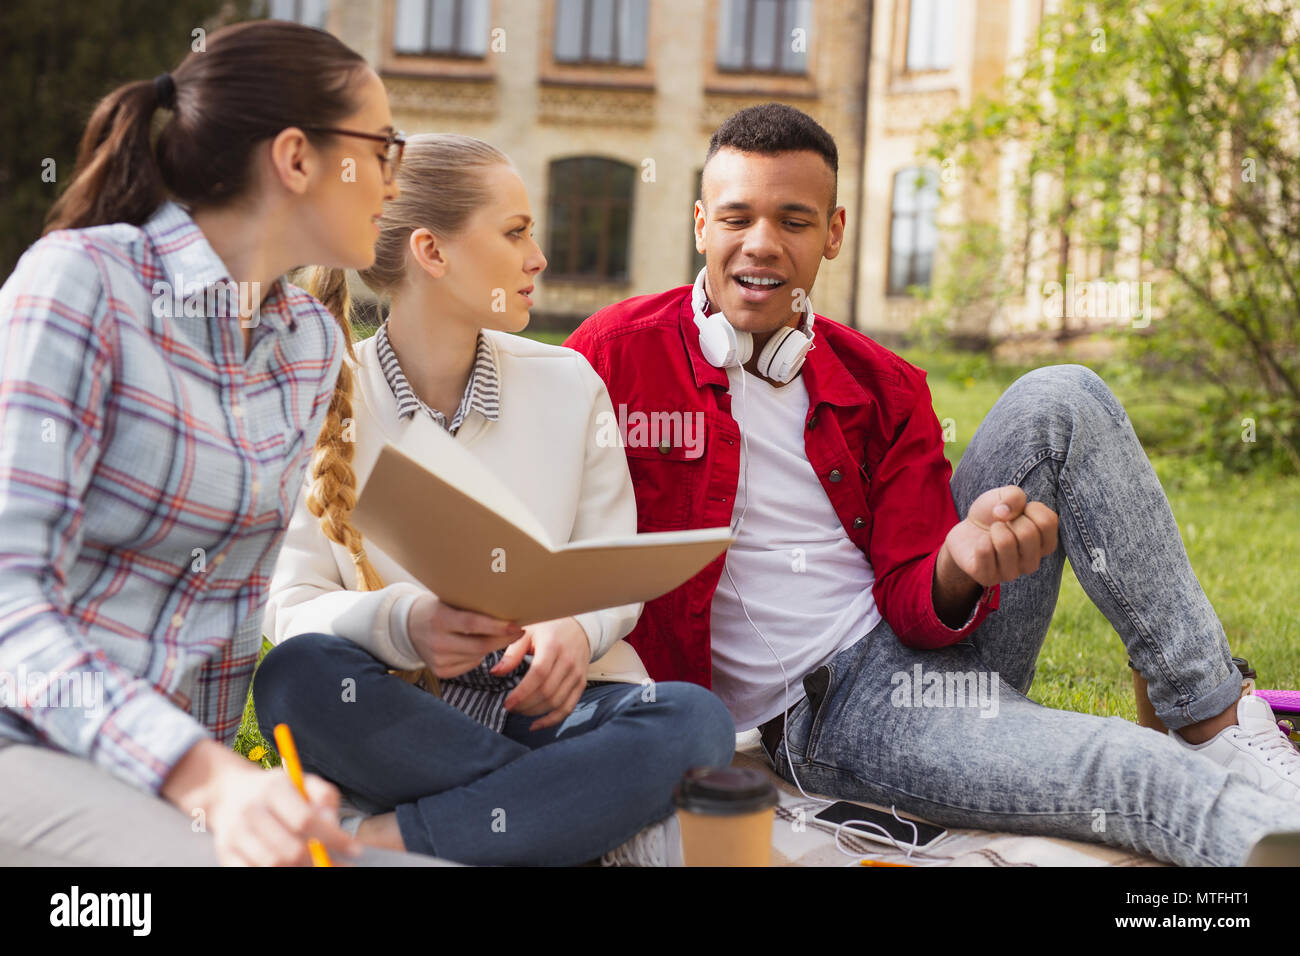 Socially active students conveying university poll - Stock Image